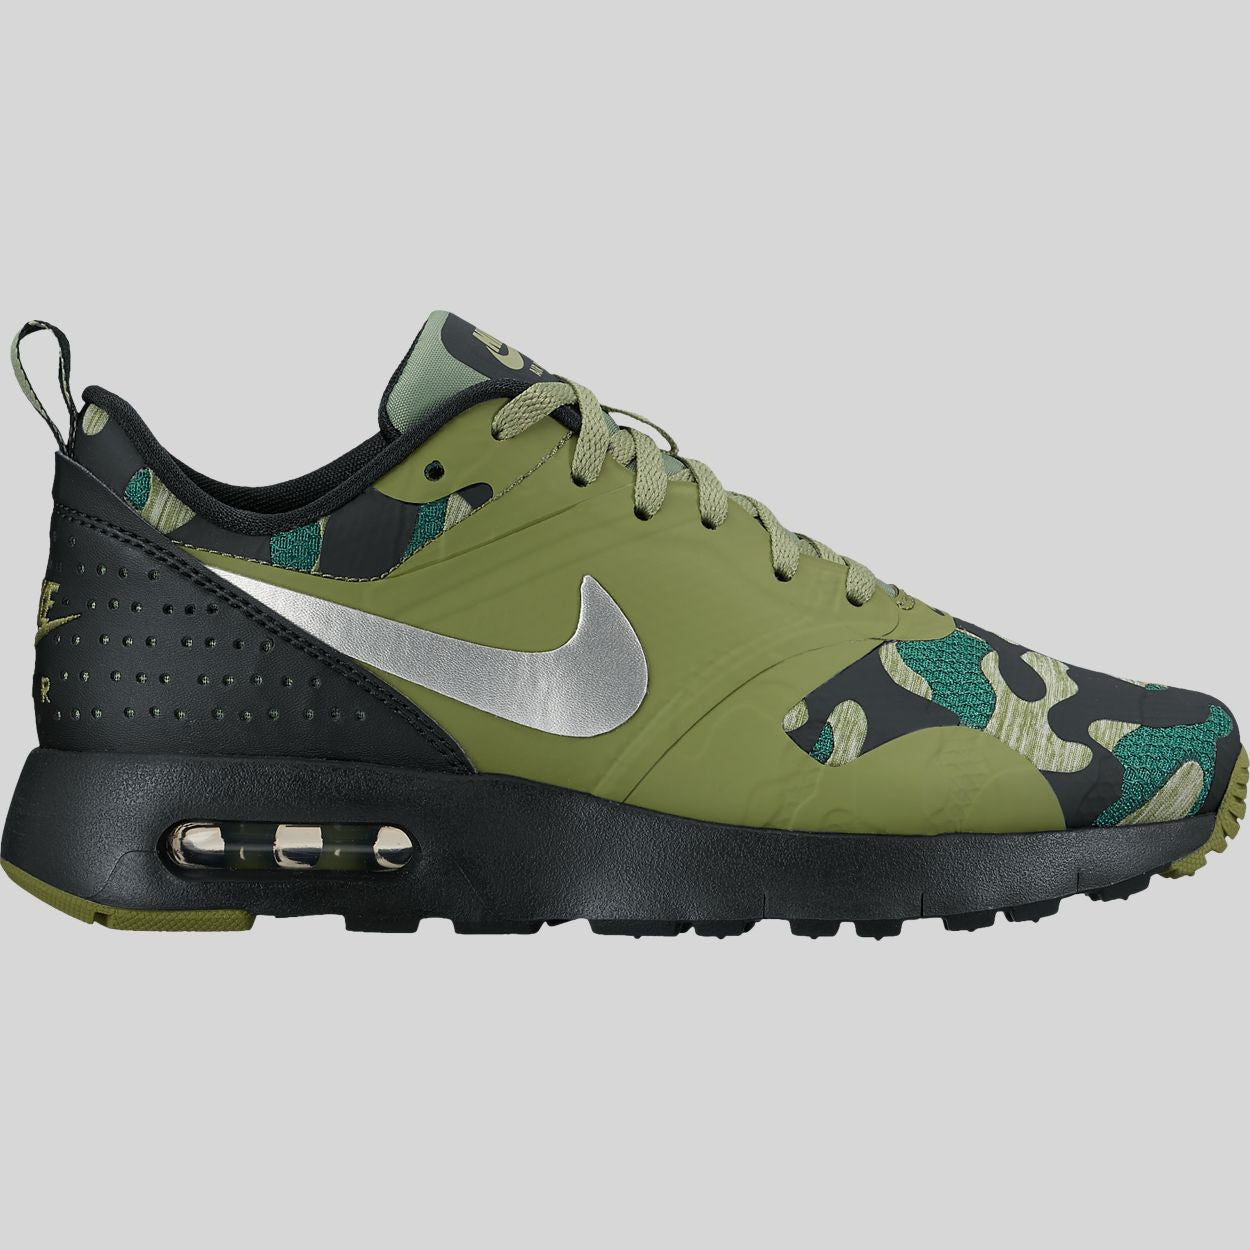 premium selection 20761 fc3fa Nike Air Max Tavas SE (GS) Black Metallic Silver Palm Green (859580-